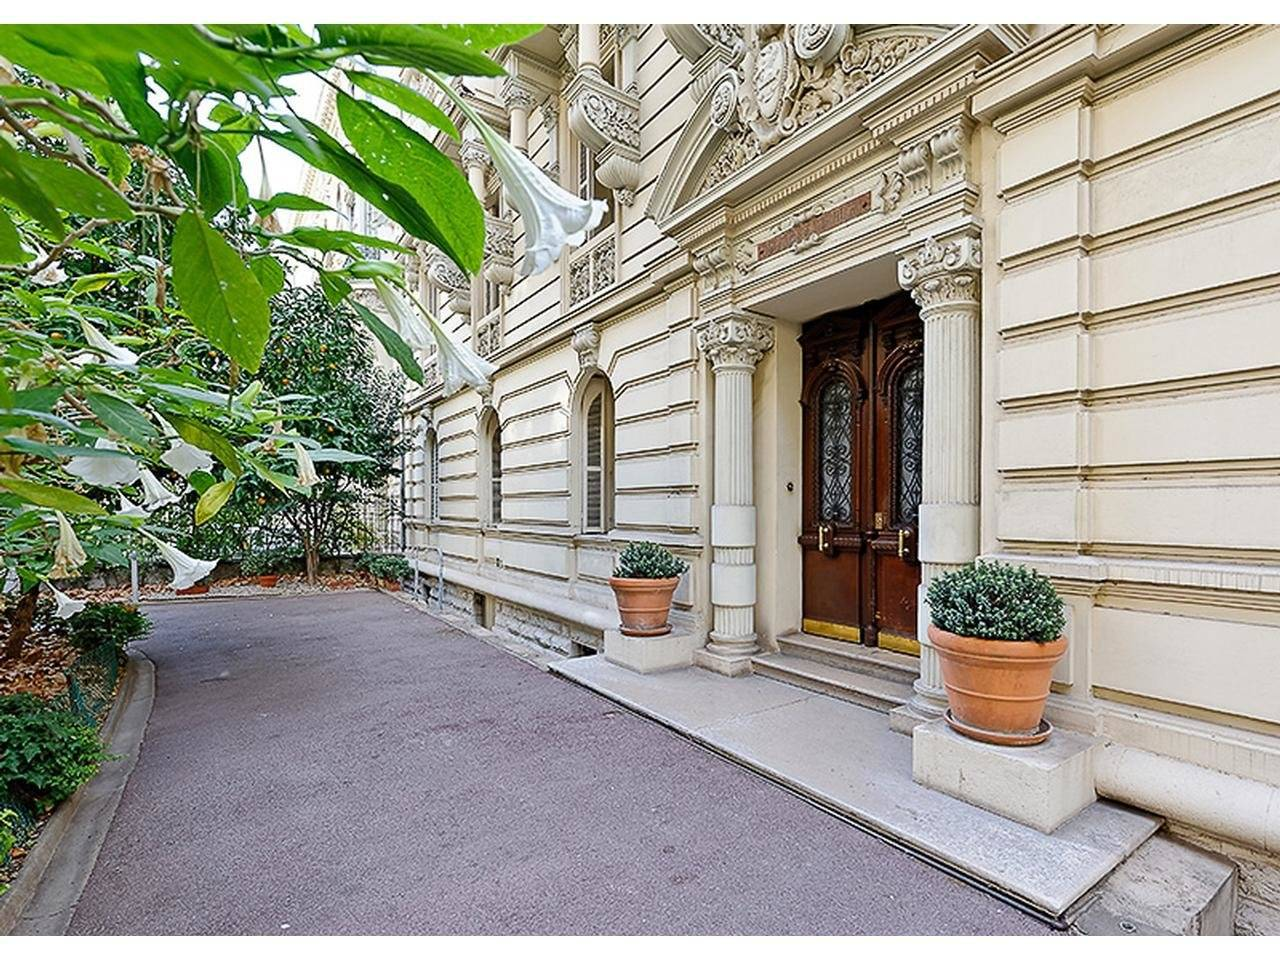 4 bedroom apartment for sale in Nice Carré d'Or